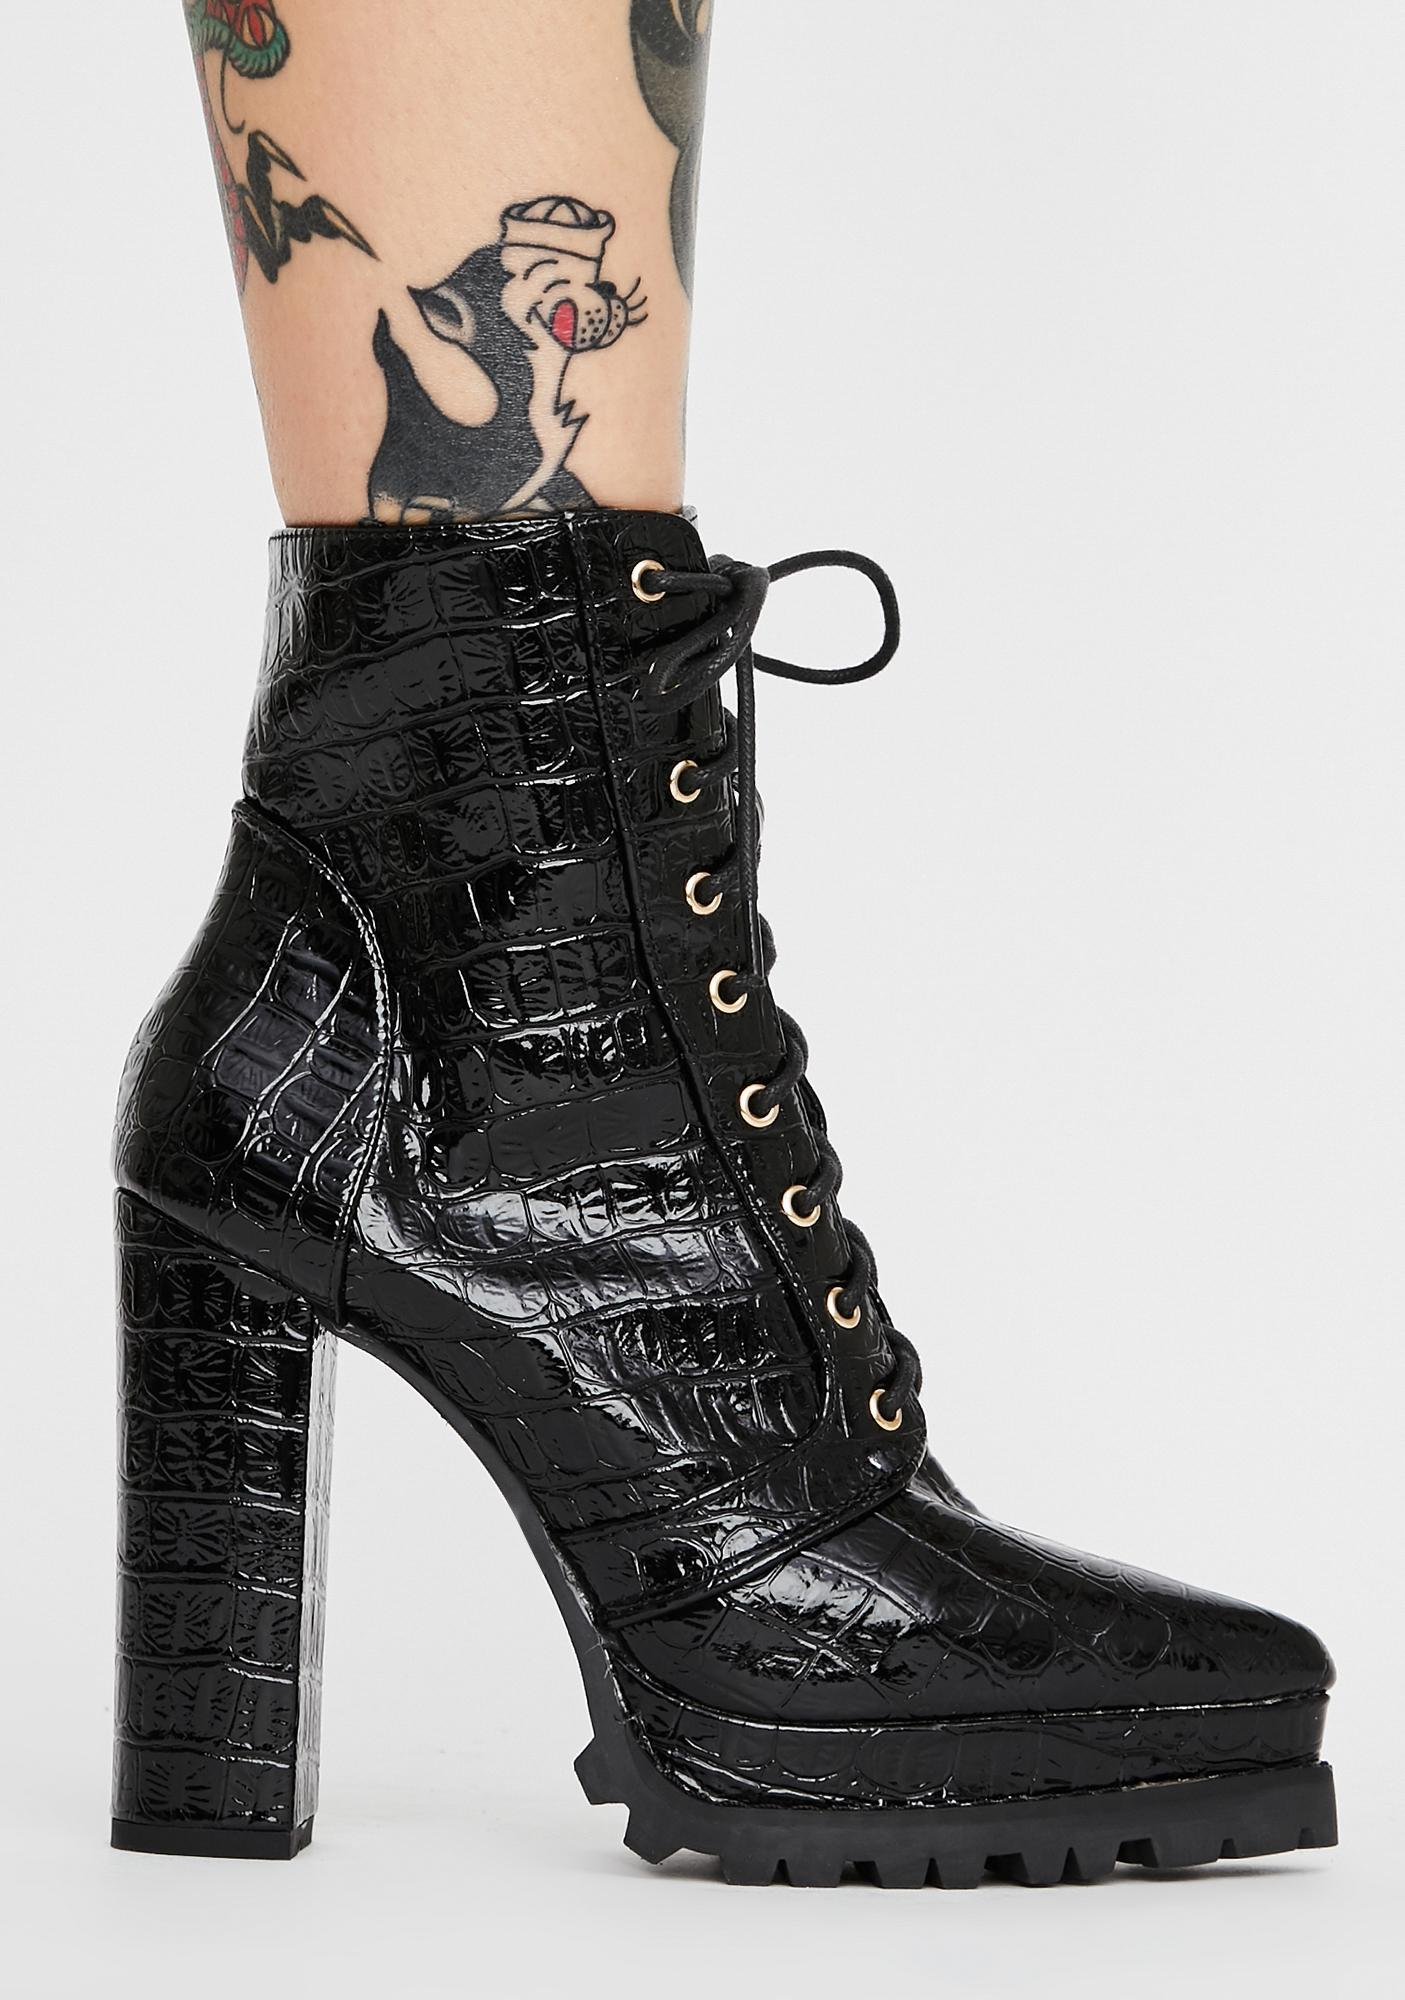 Impure Socialite Chic Ankle Boots